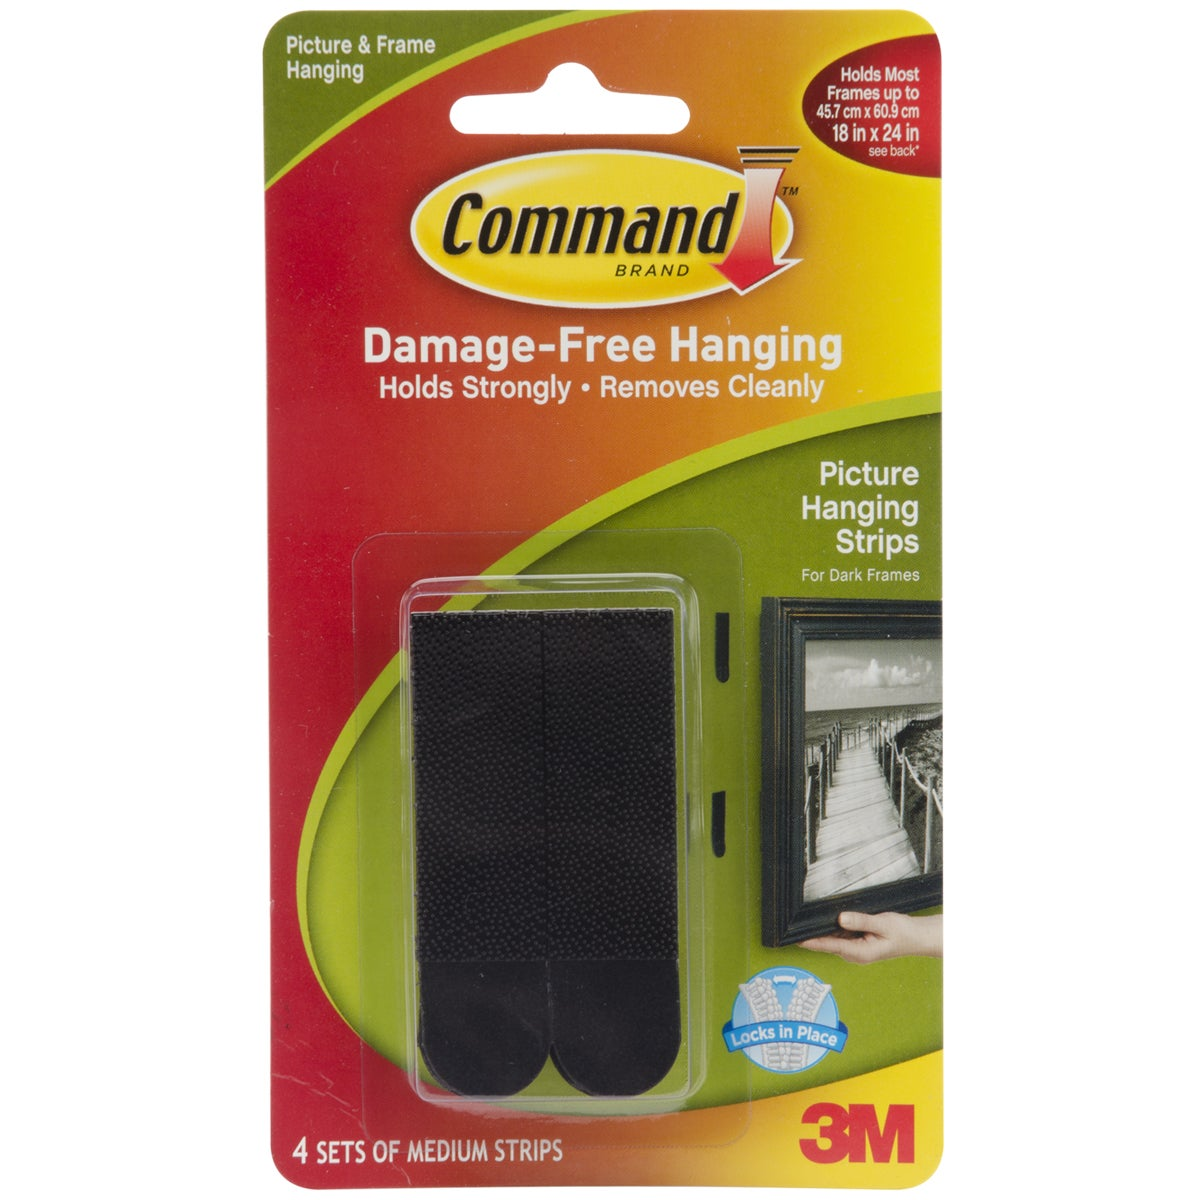 3M Command Black Medium Picture Hanging Strips (Set of 4)...